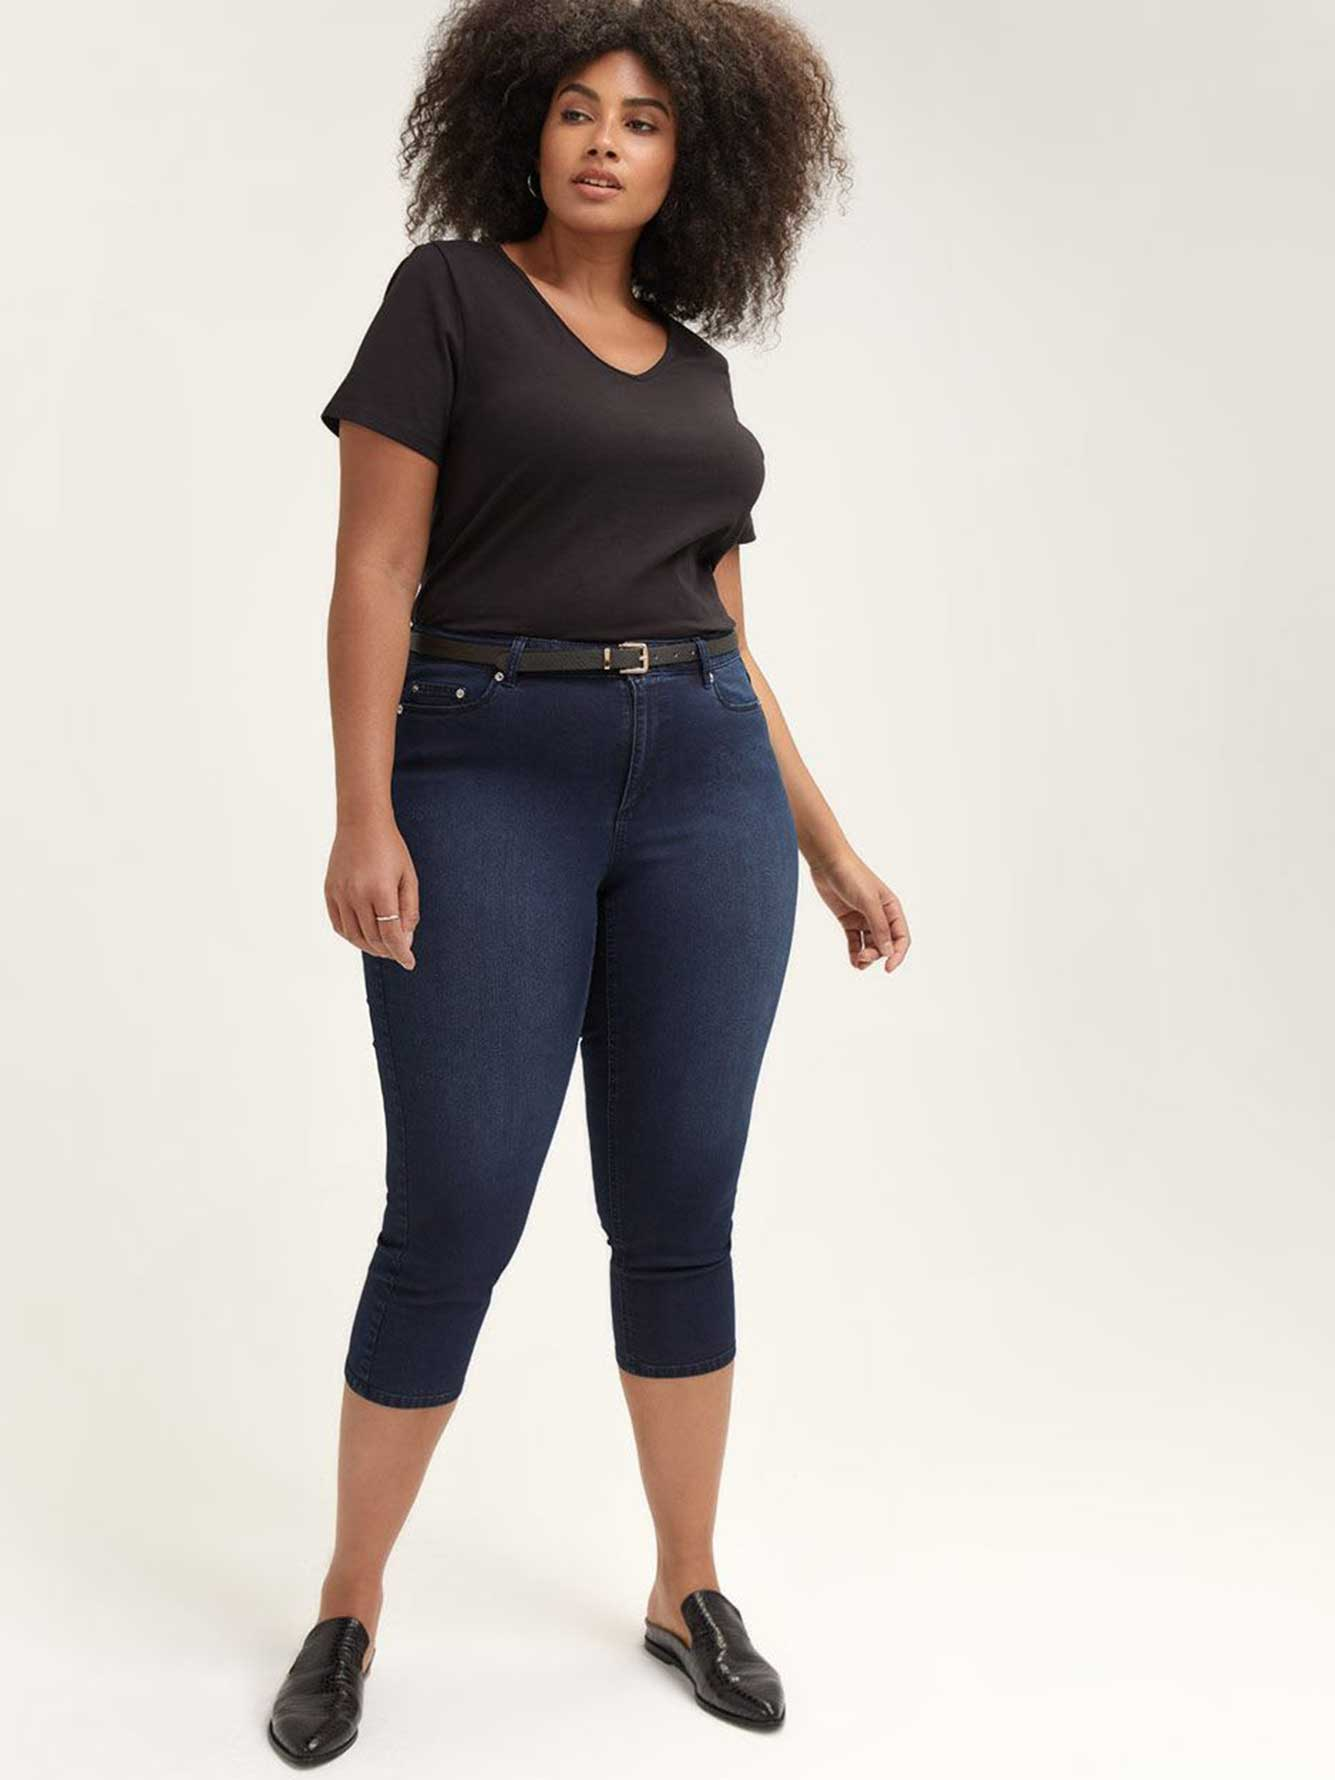 Super Soft Cropped Jegging - L&L